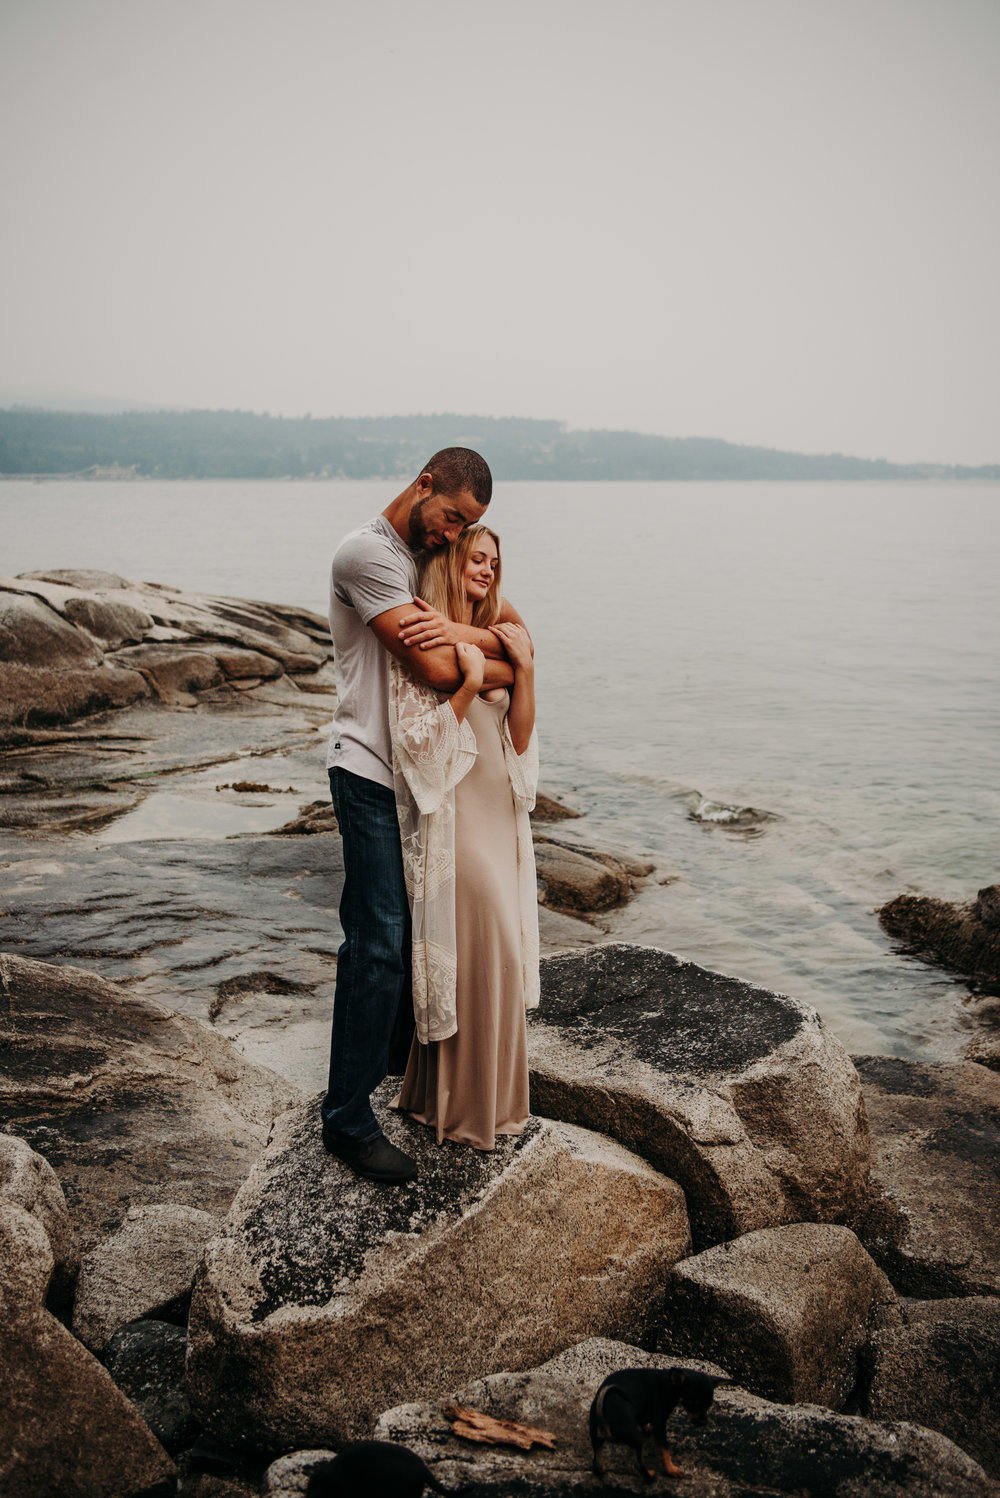 Sierra & Tyler Summer Beach Couples Session - Laura Olson Photography - Sunshine Coast BC Photographer-2332.jpg